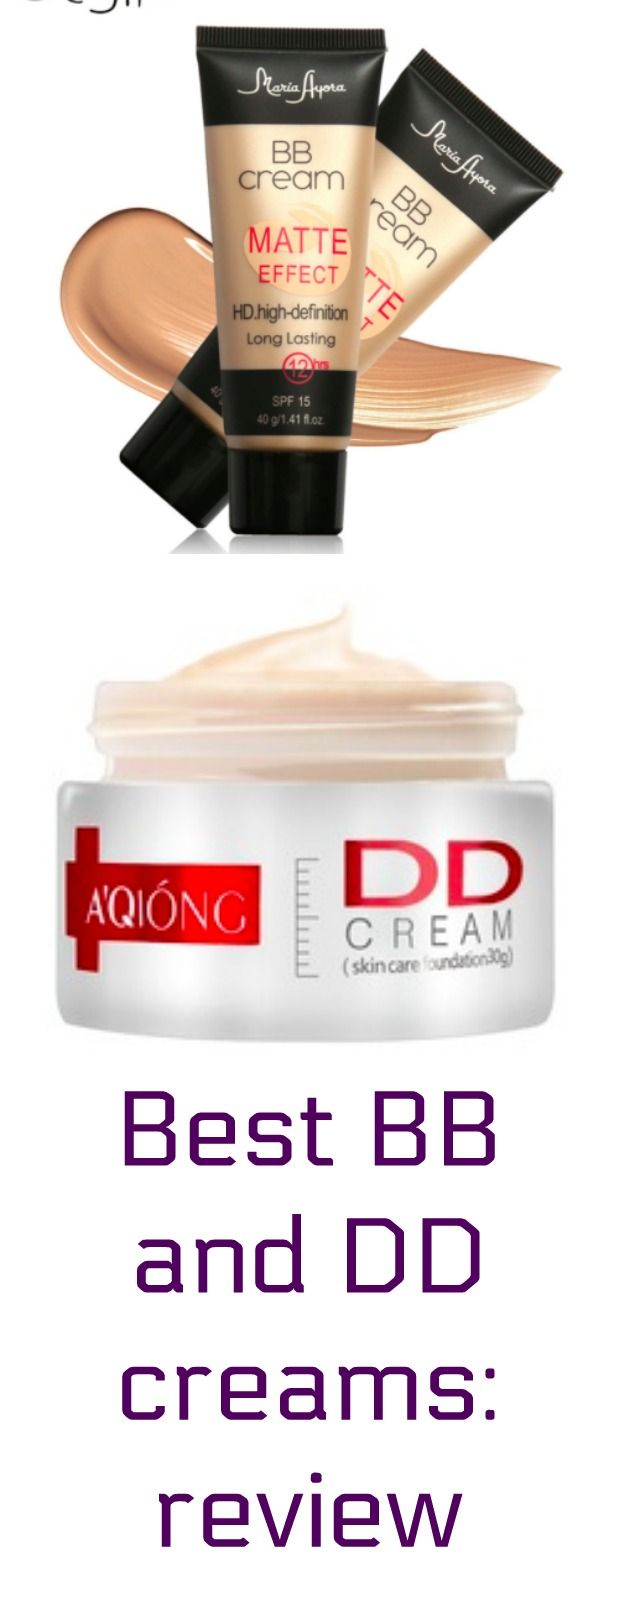 BB cream, CC cream, DD cream,  Beauty products review, Skin care, Best skin care, Anti-aging, Tinted moisturizer, foundation, flawless skin, BB cream products, DD cream, SPF